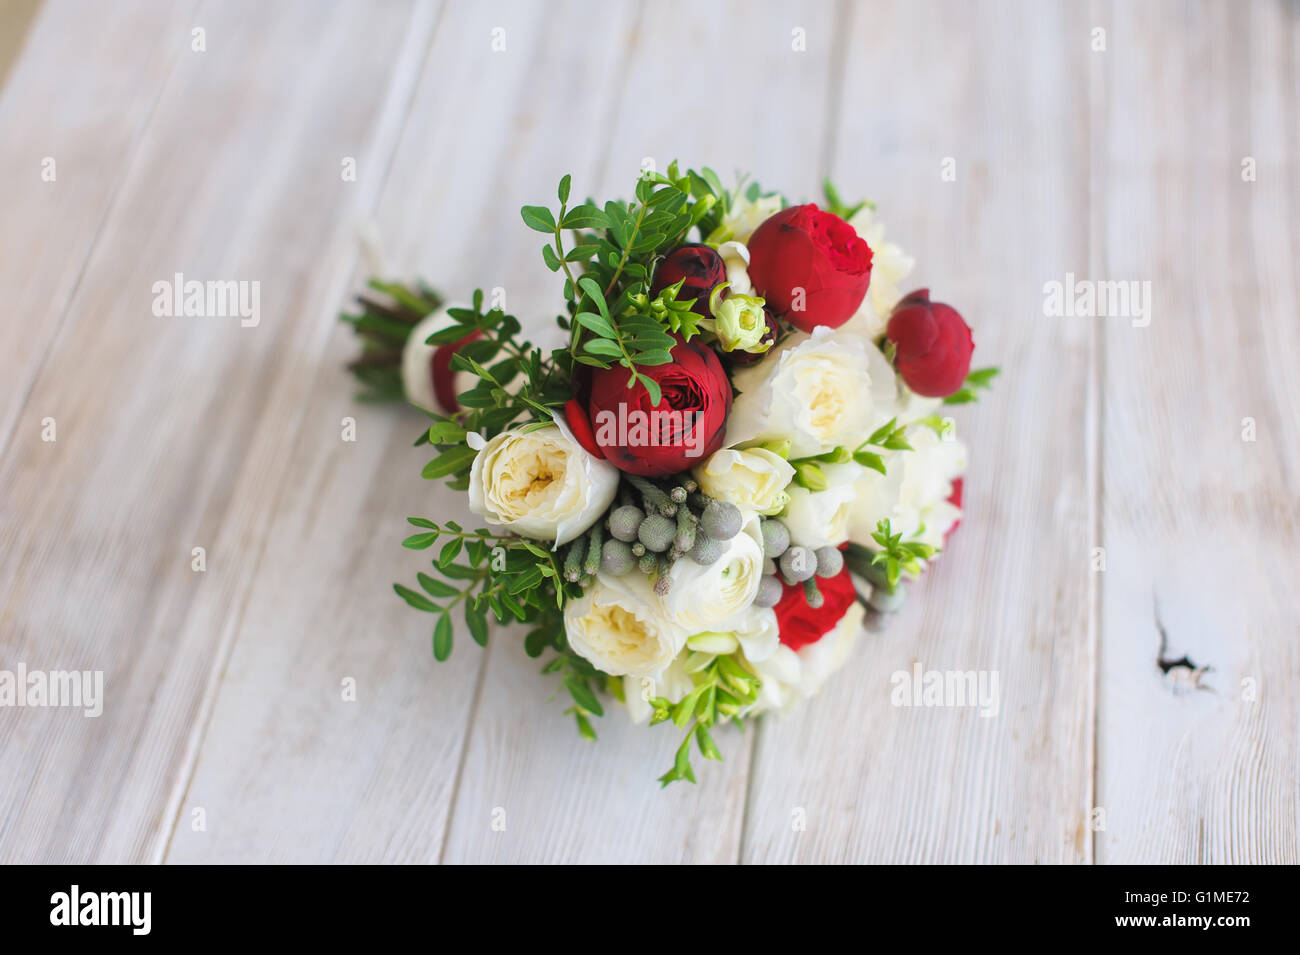 Beautiful And Colorful Wedding Bouquet Of Flowers Over Wood Table